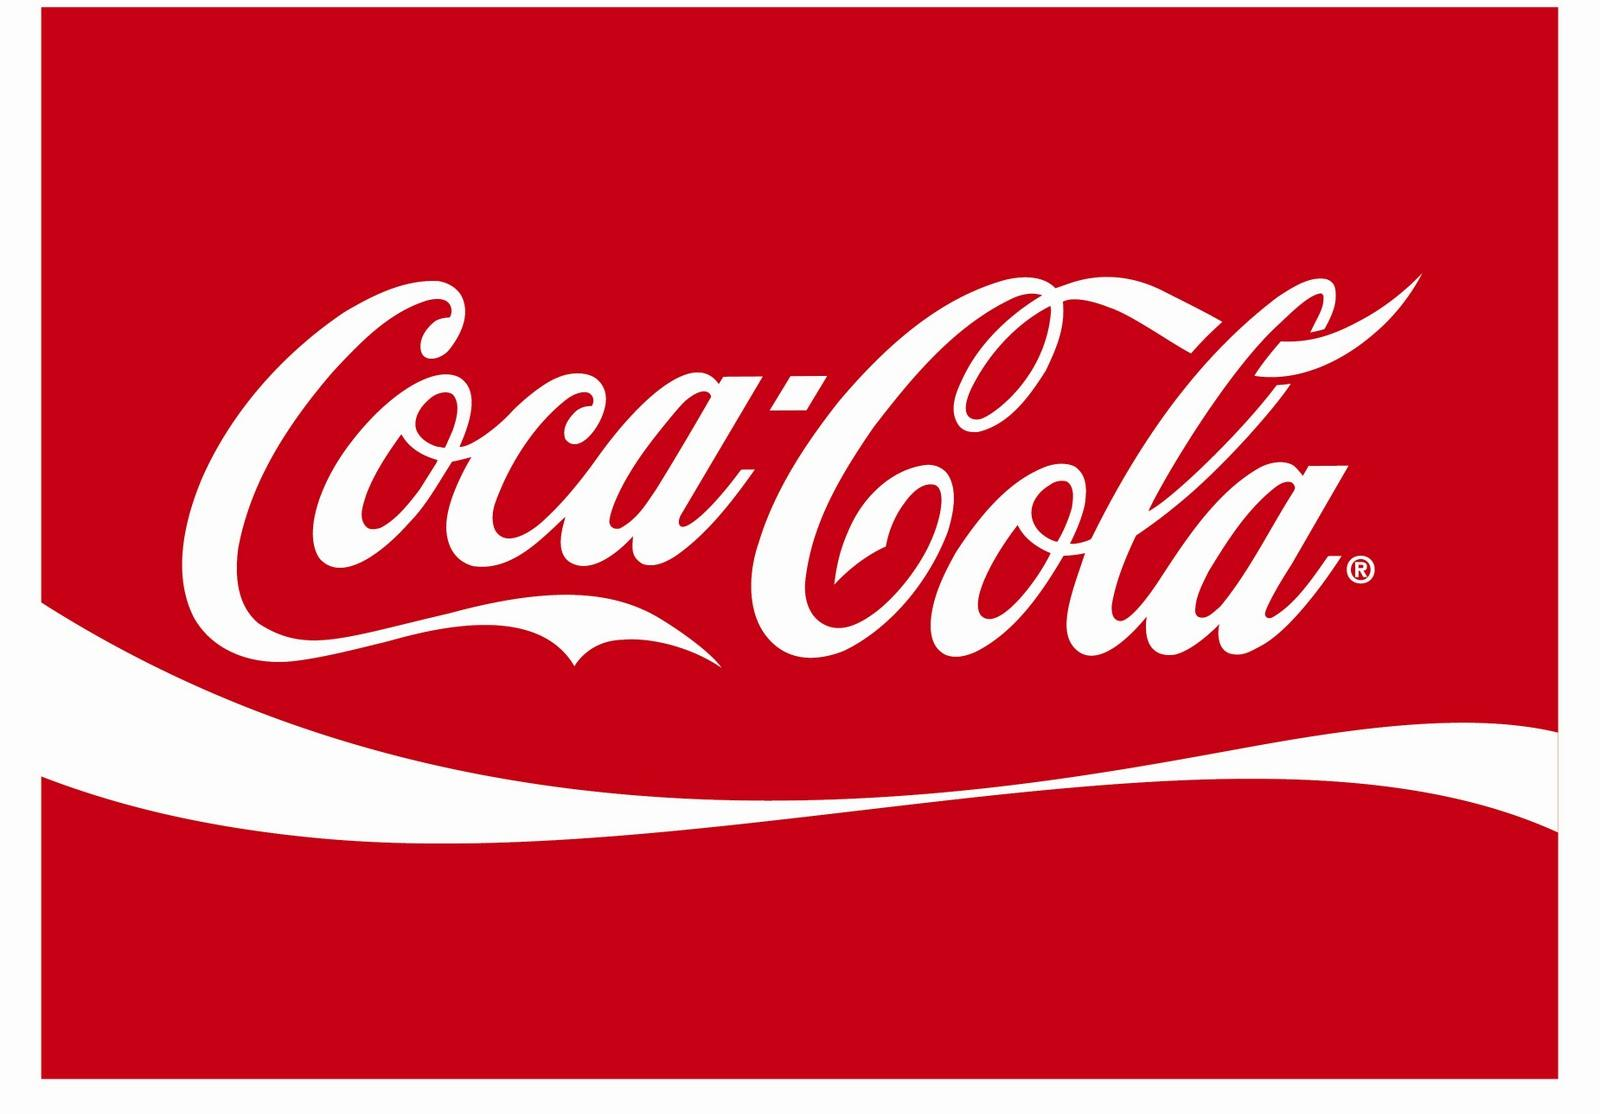 Business Unit Communications Manager at Coca-Cola Company